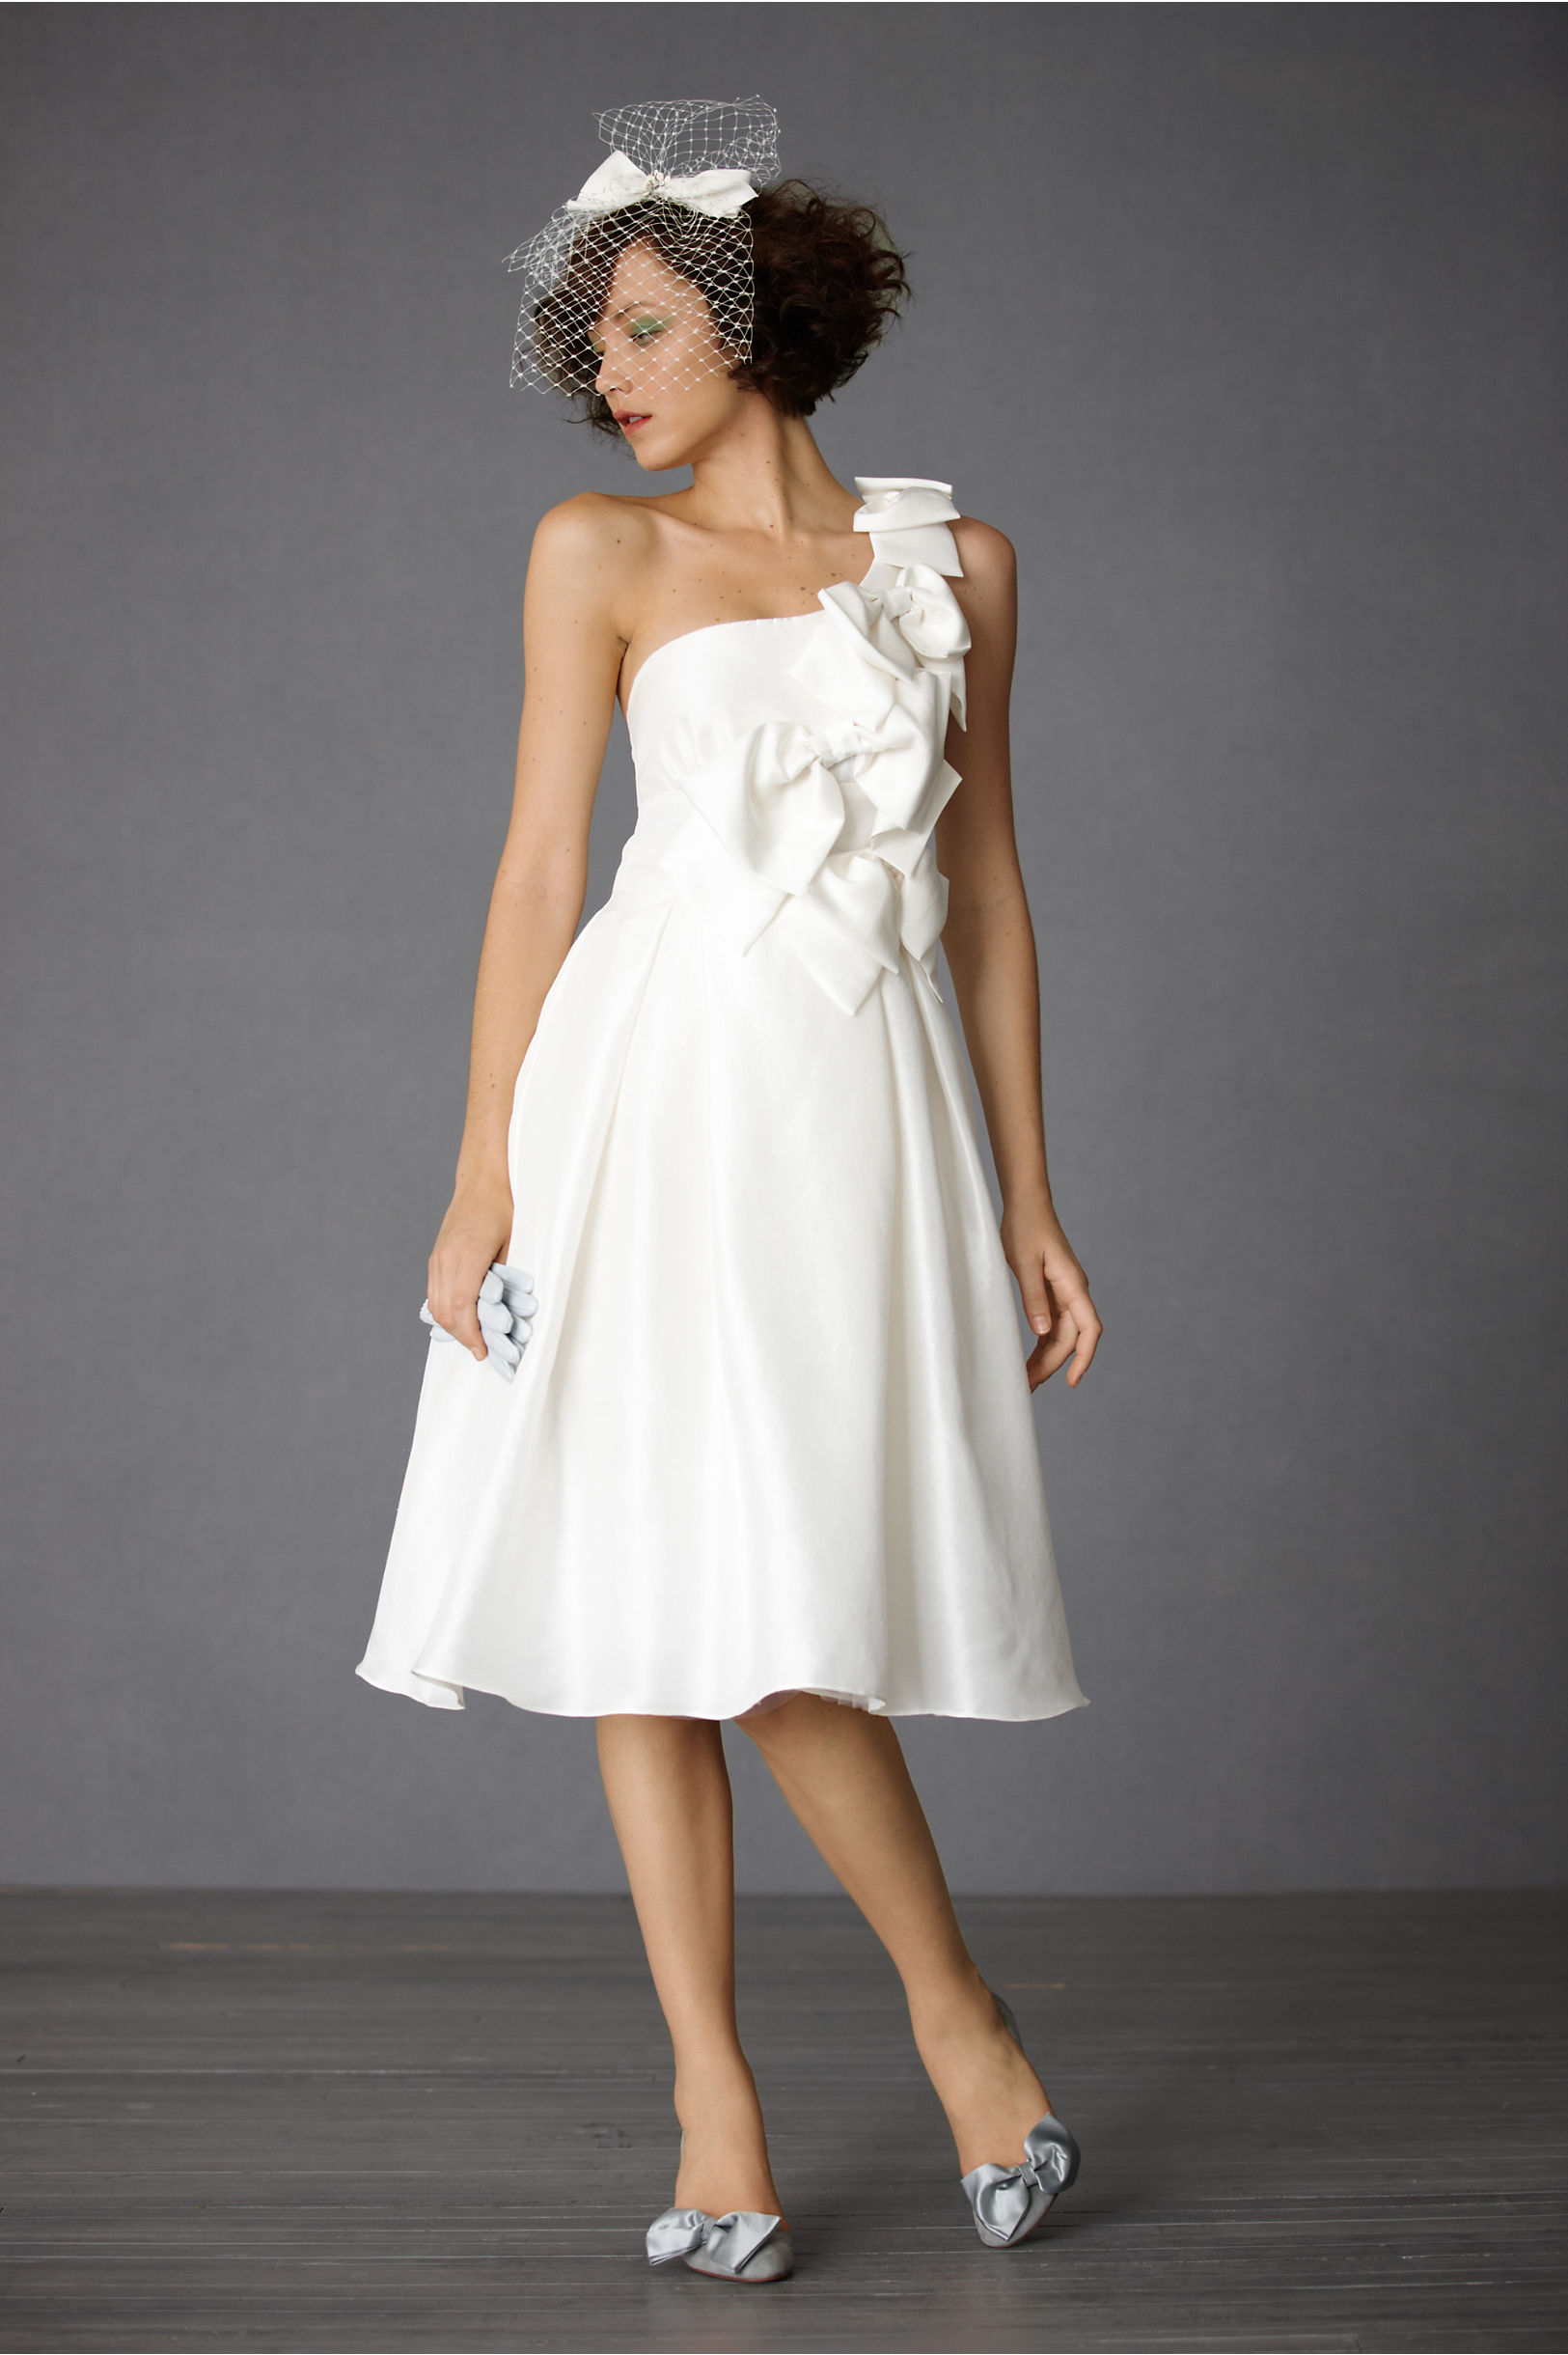 Afternoon Social Dress in New & Noteworthy   BHLDN